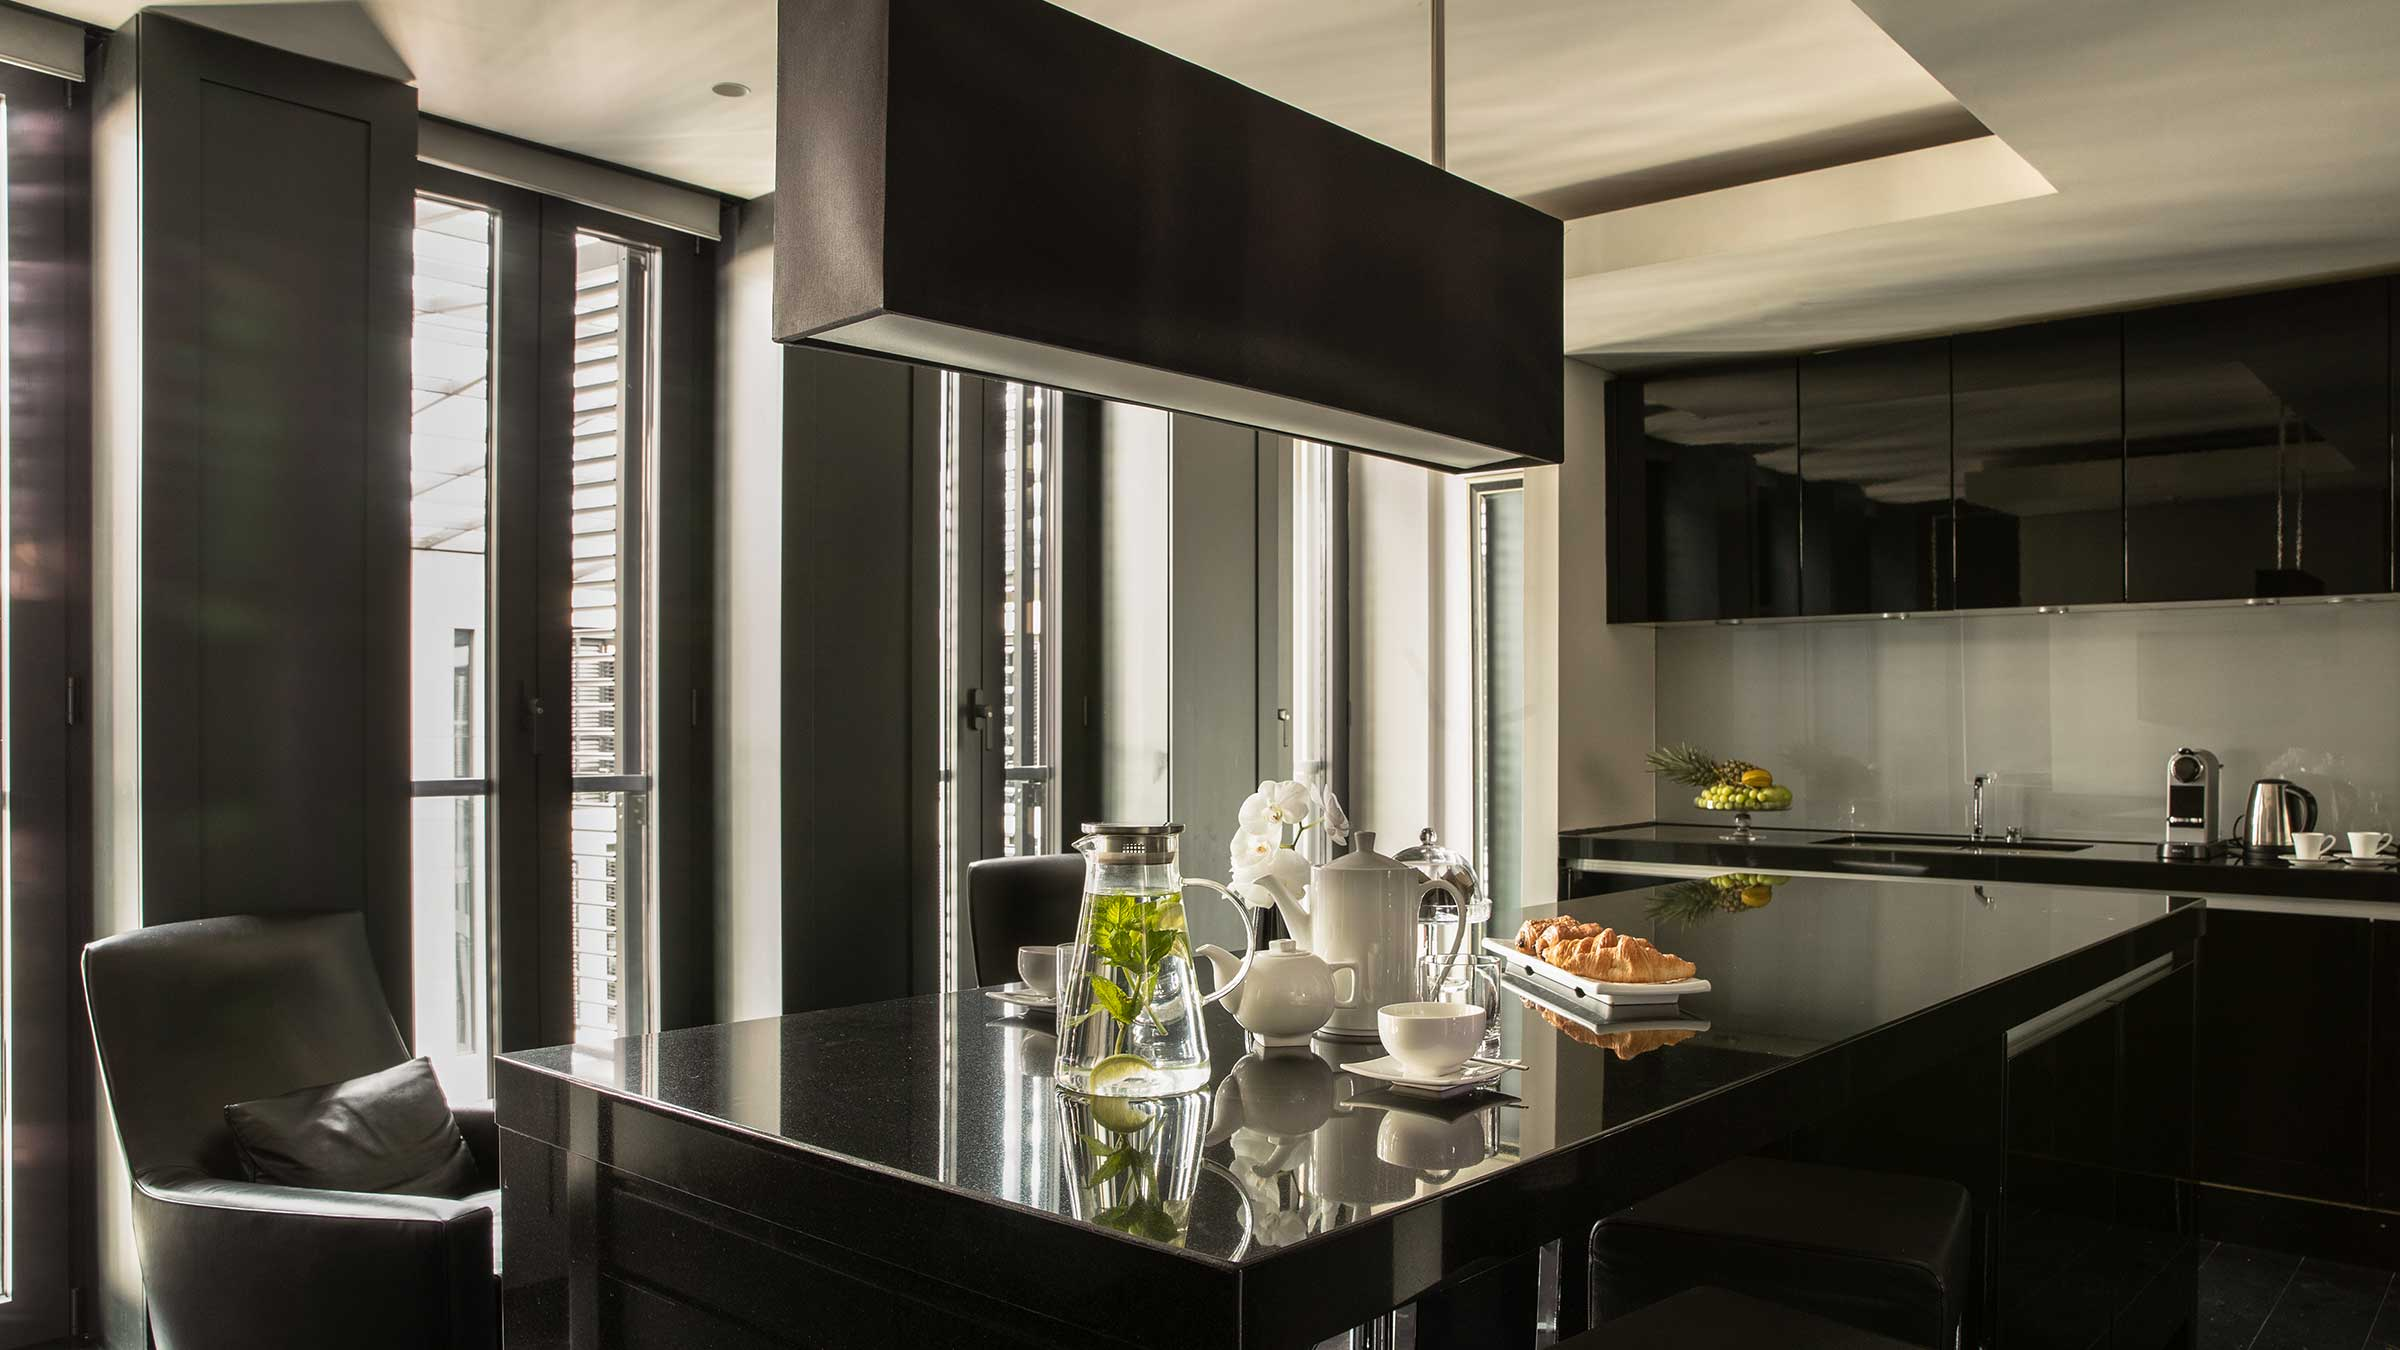 Kitchen - knightsbridge Penthouse